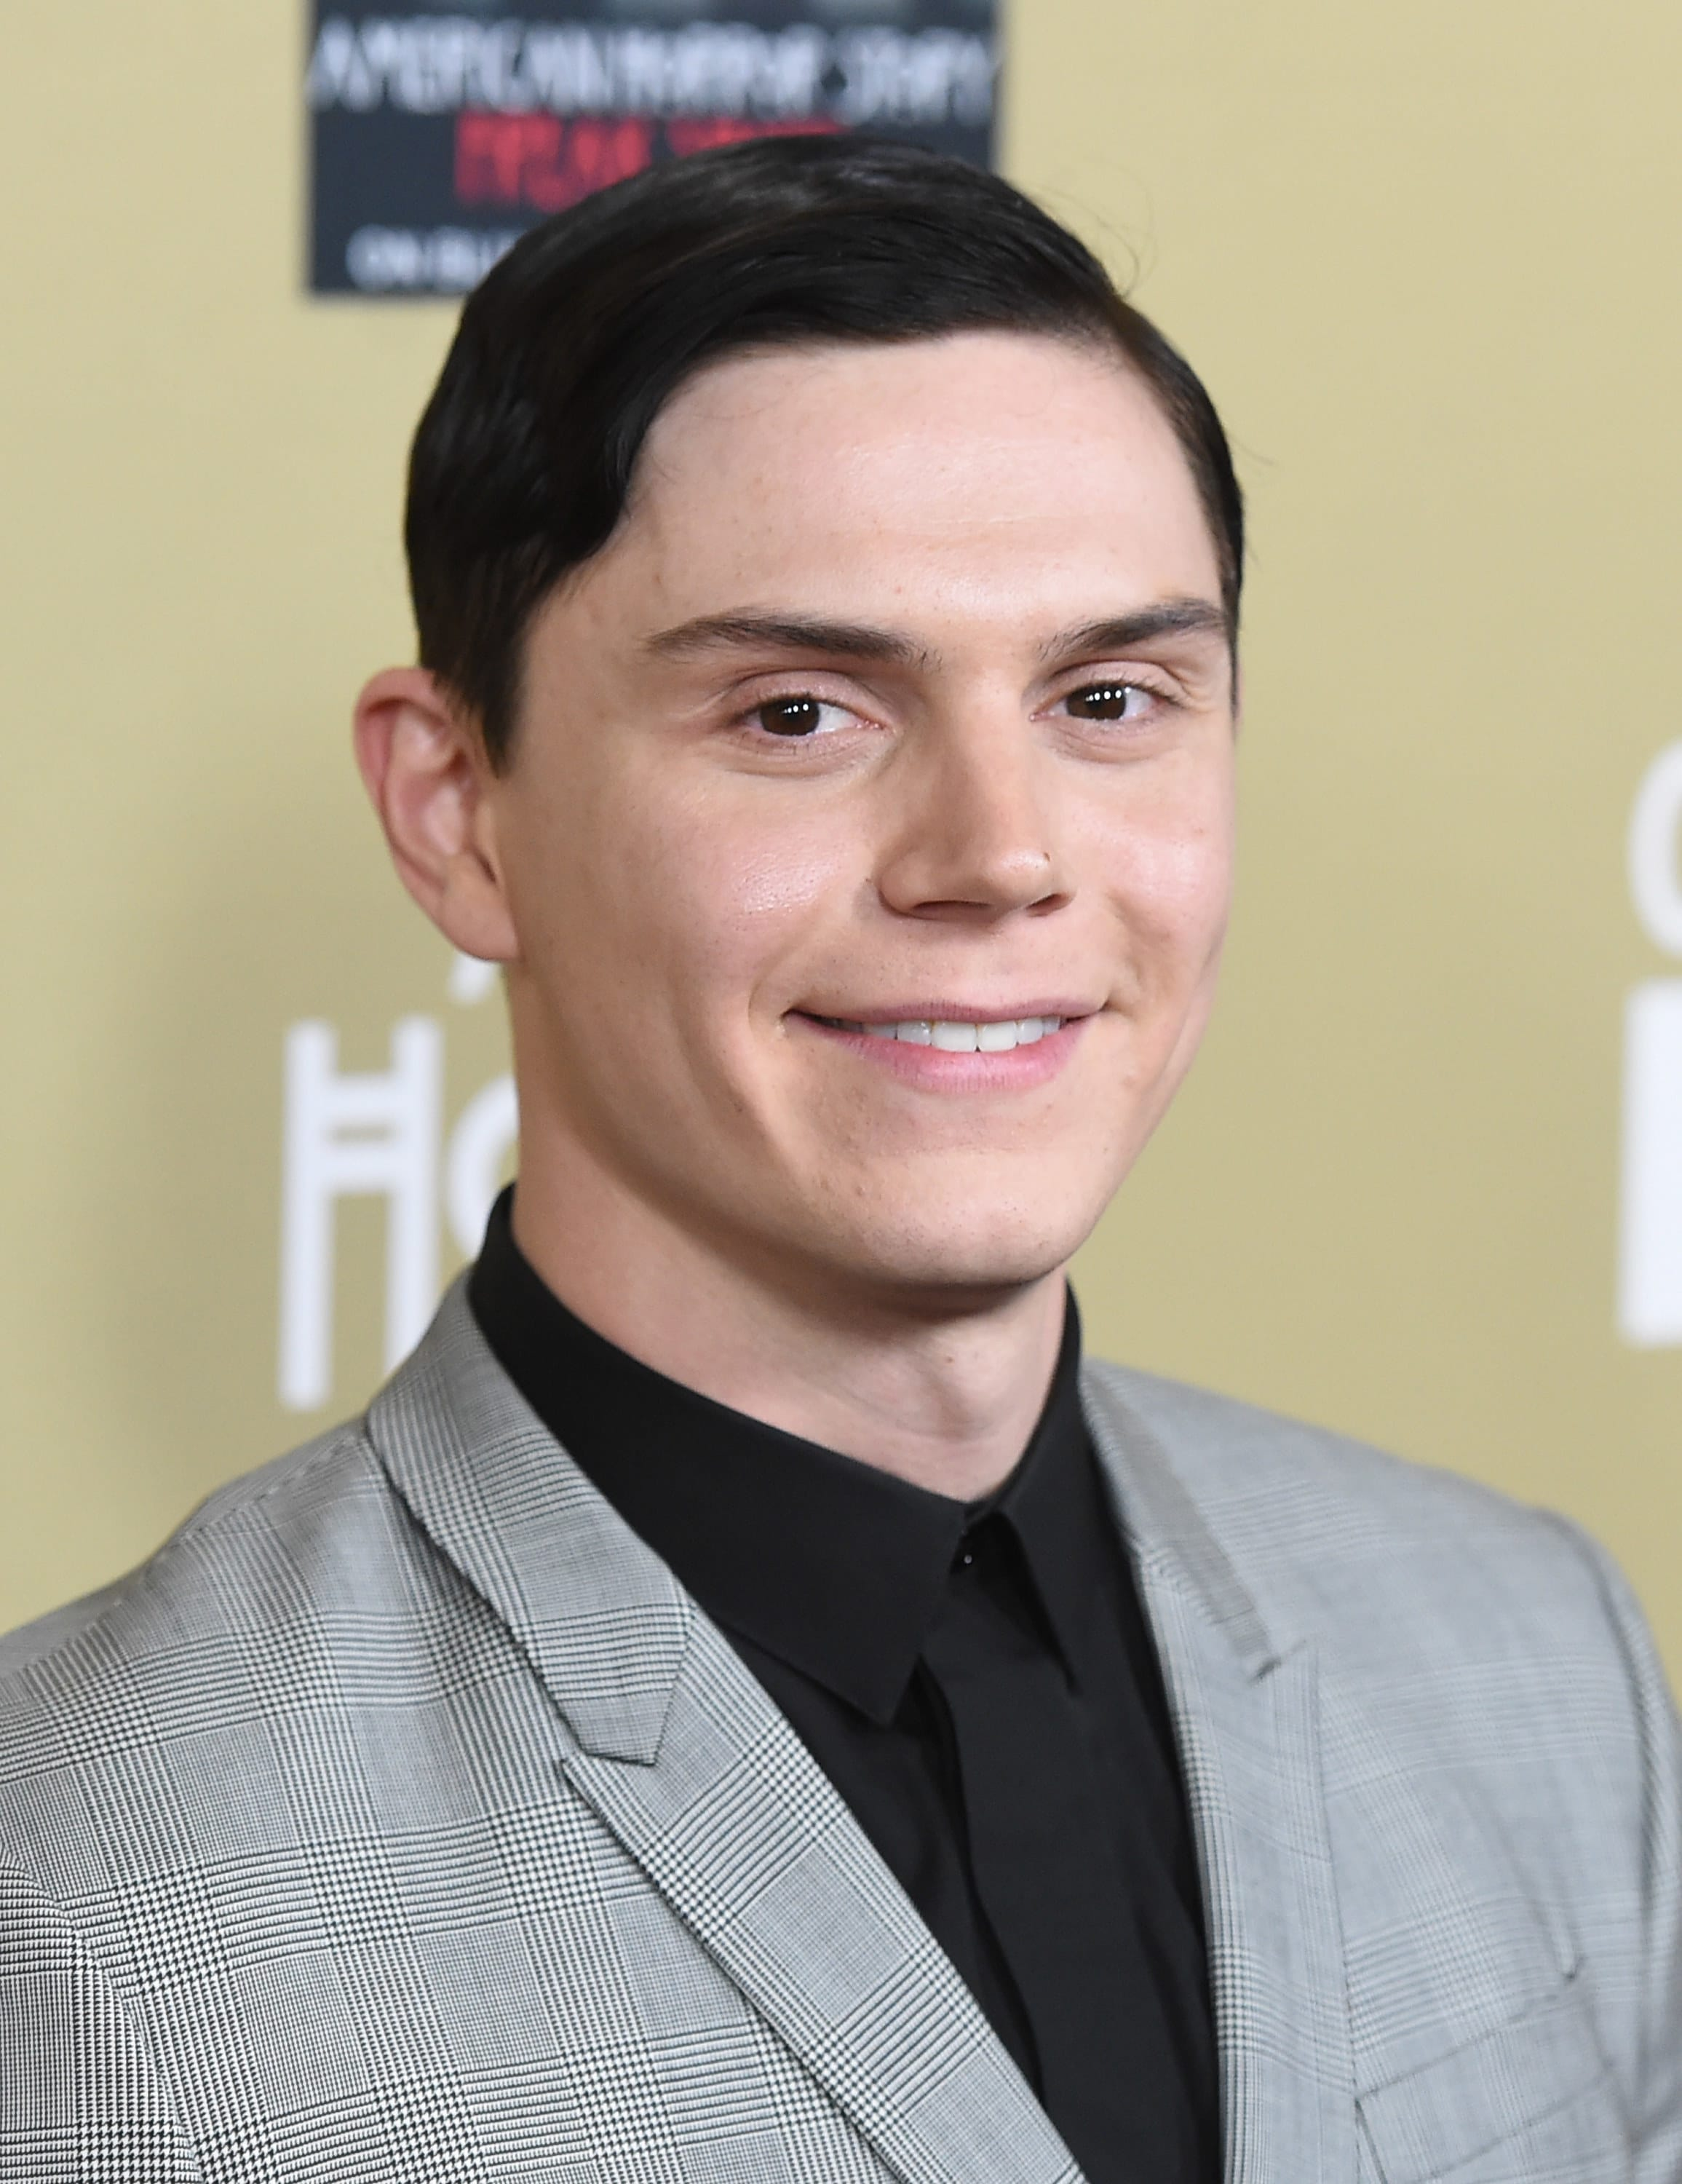 Evan Peters at the American Horror Story: Hotel premiere